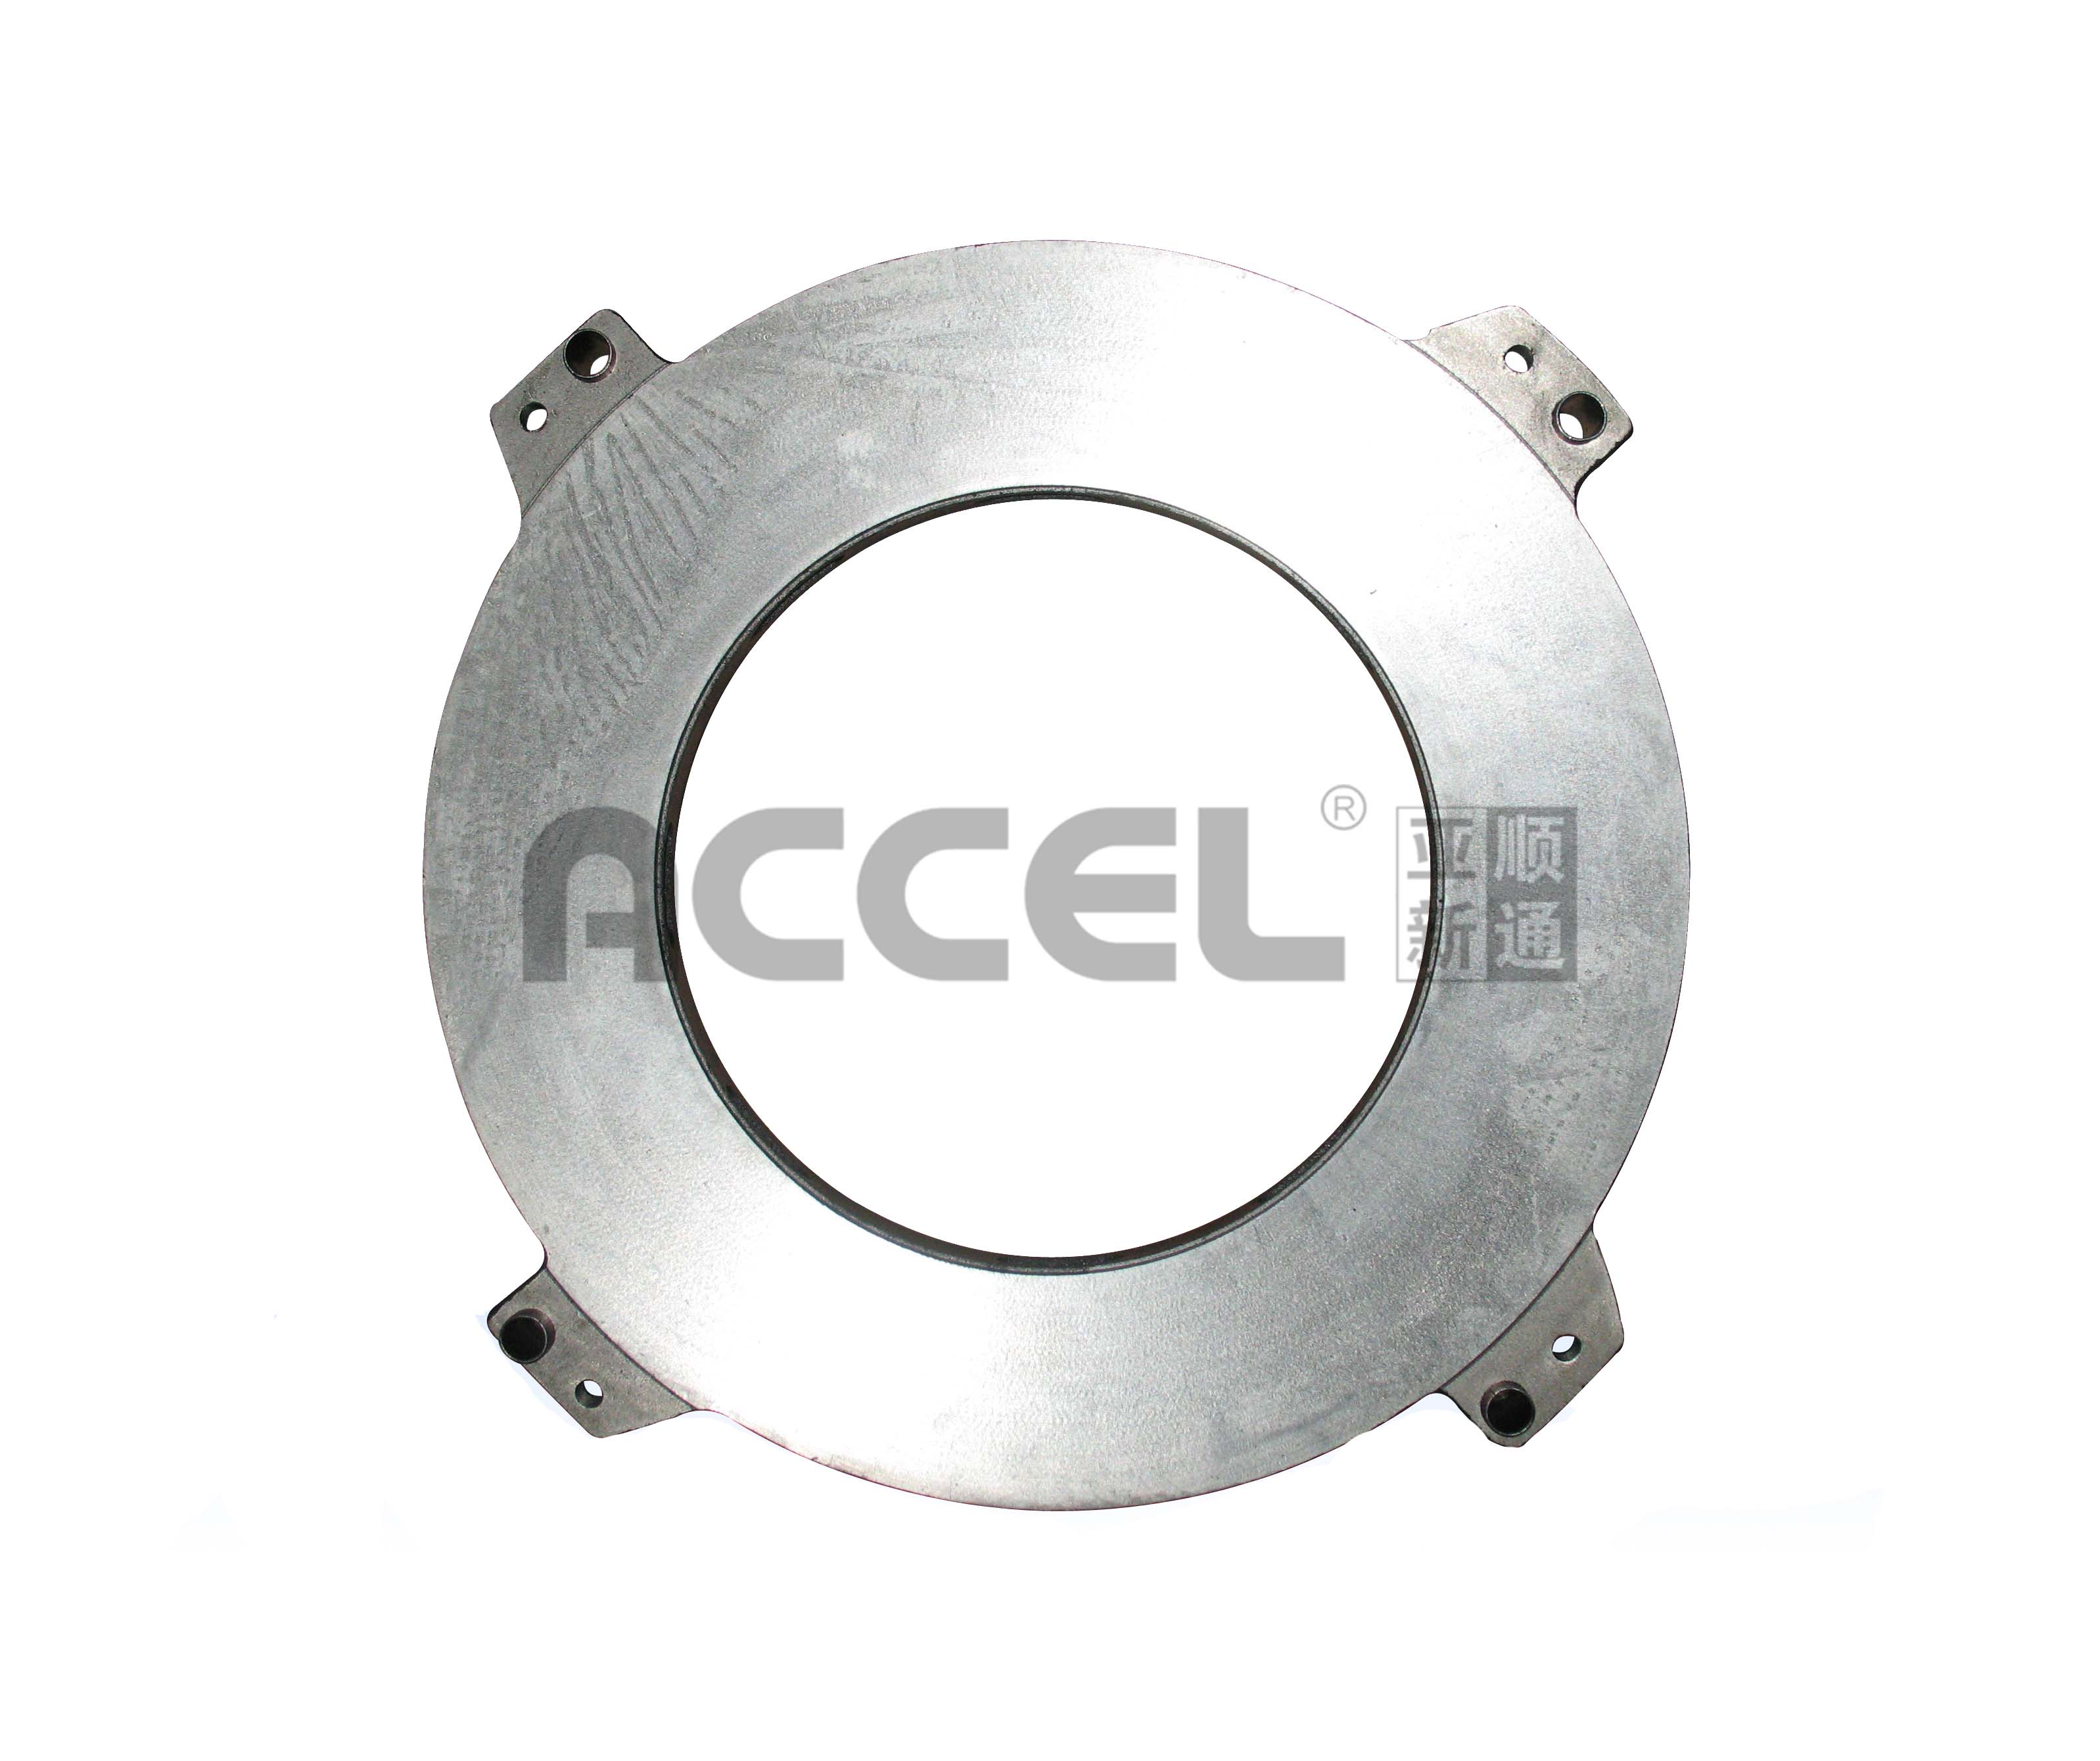 Clutch Cover/OE:NULL/404*247*29/IPP-005/LS/LZ004